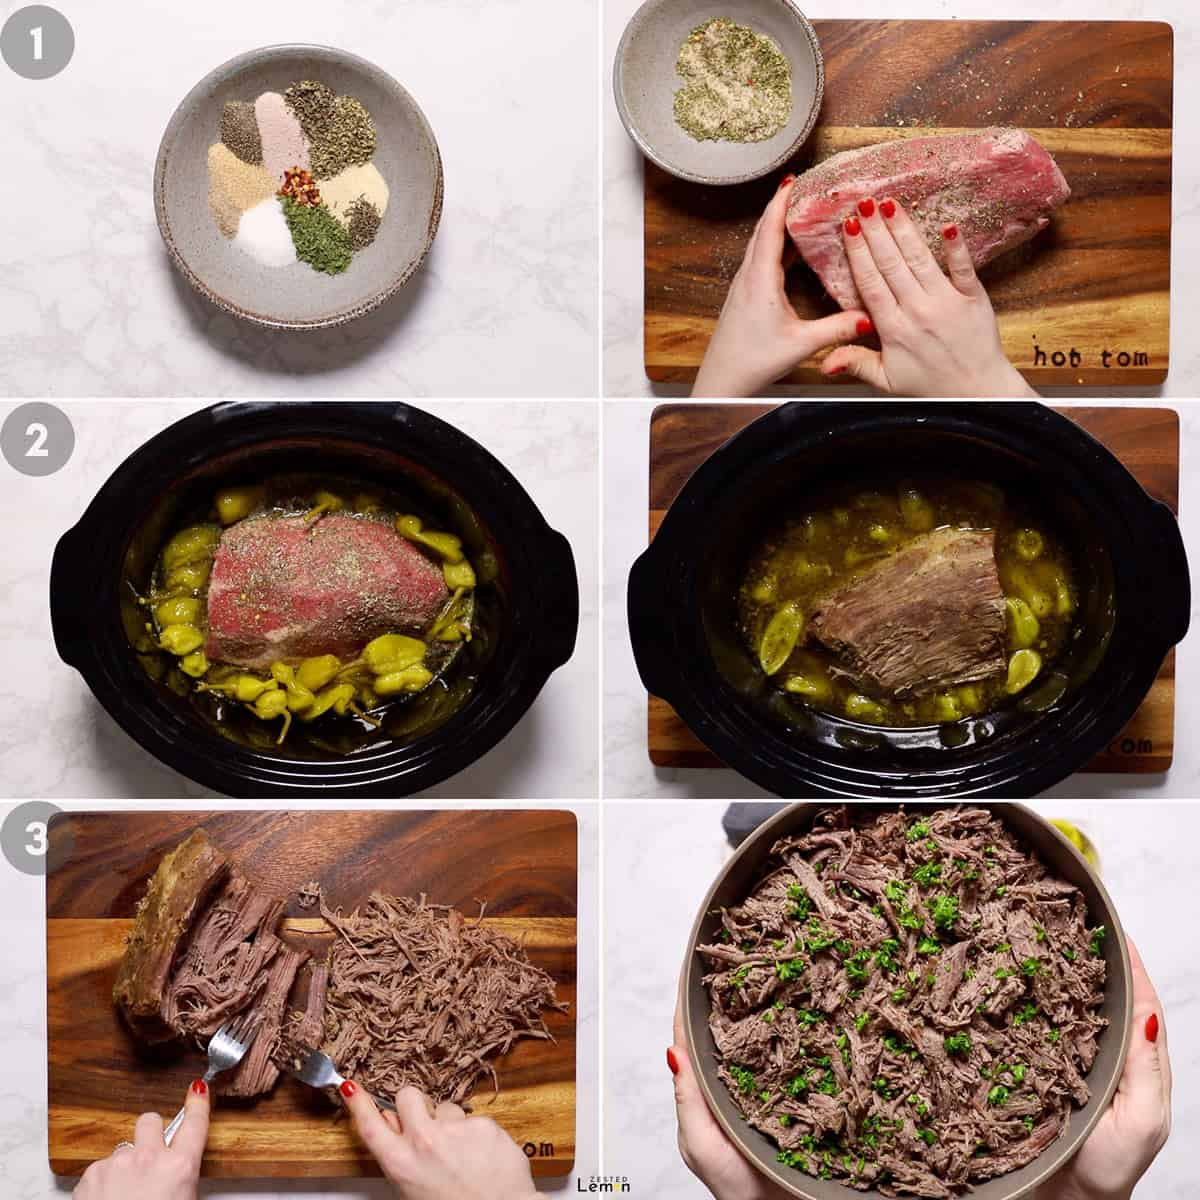 Step by step instructions to make Italian beef.